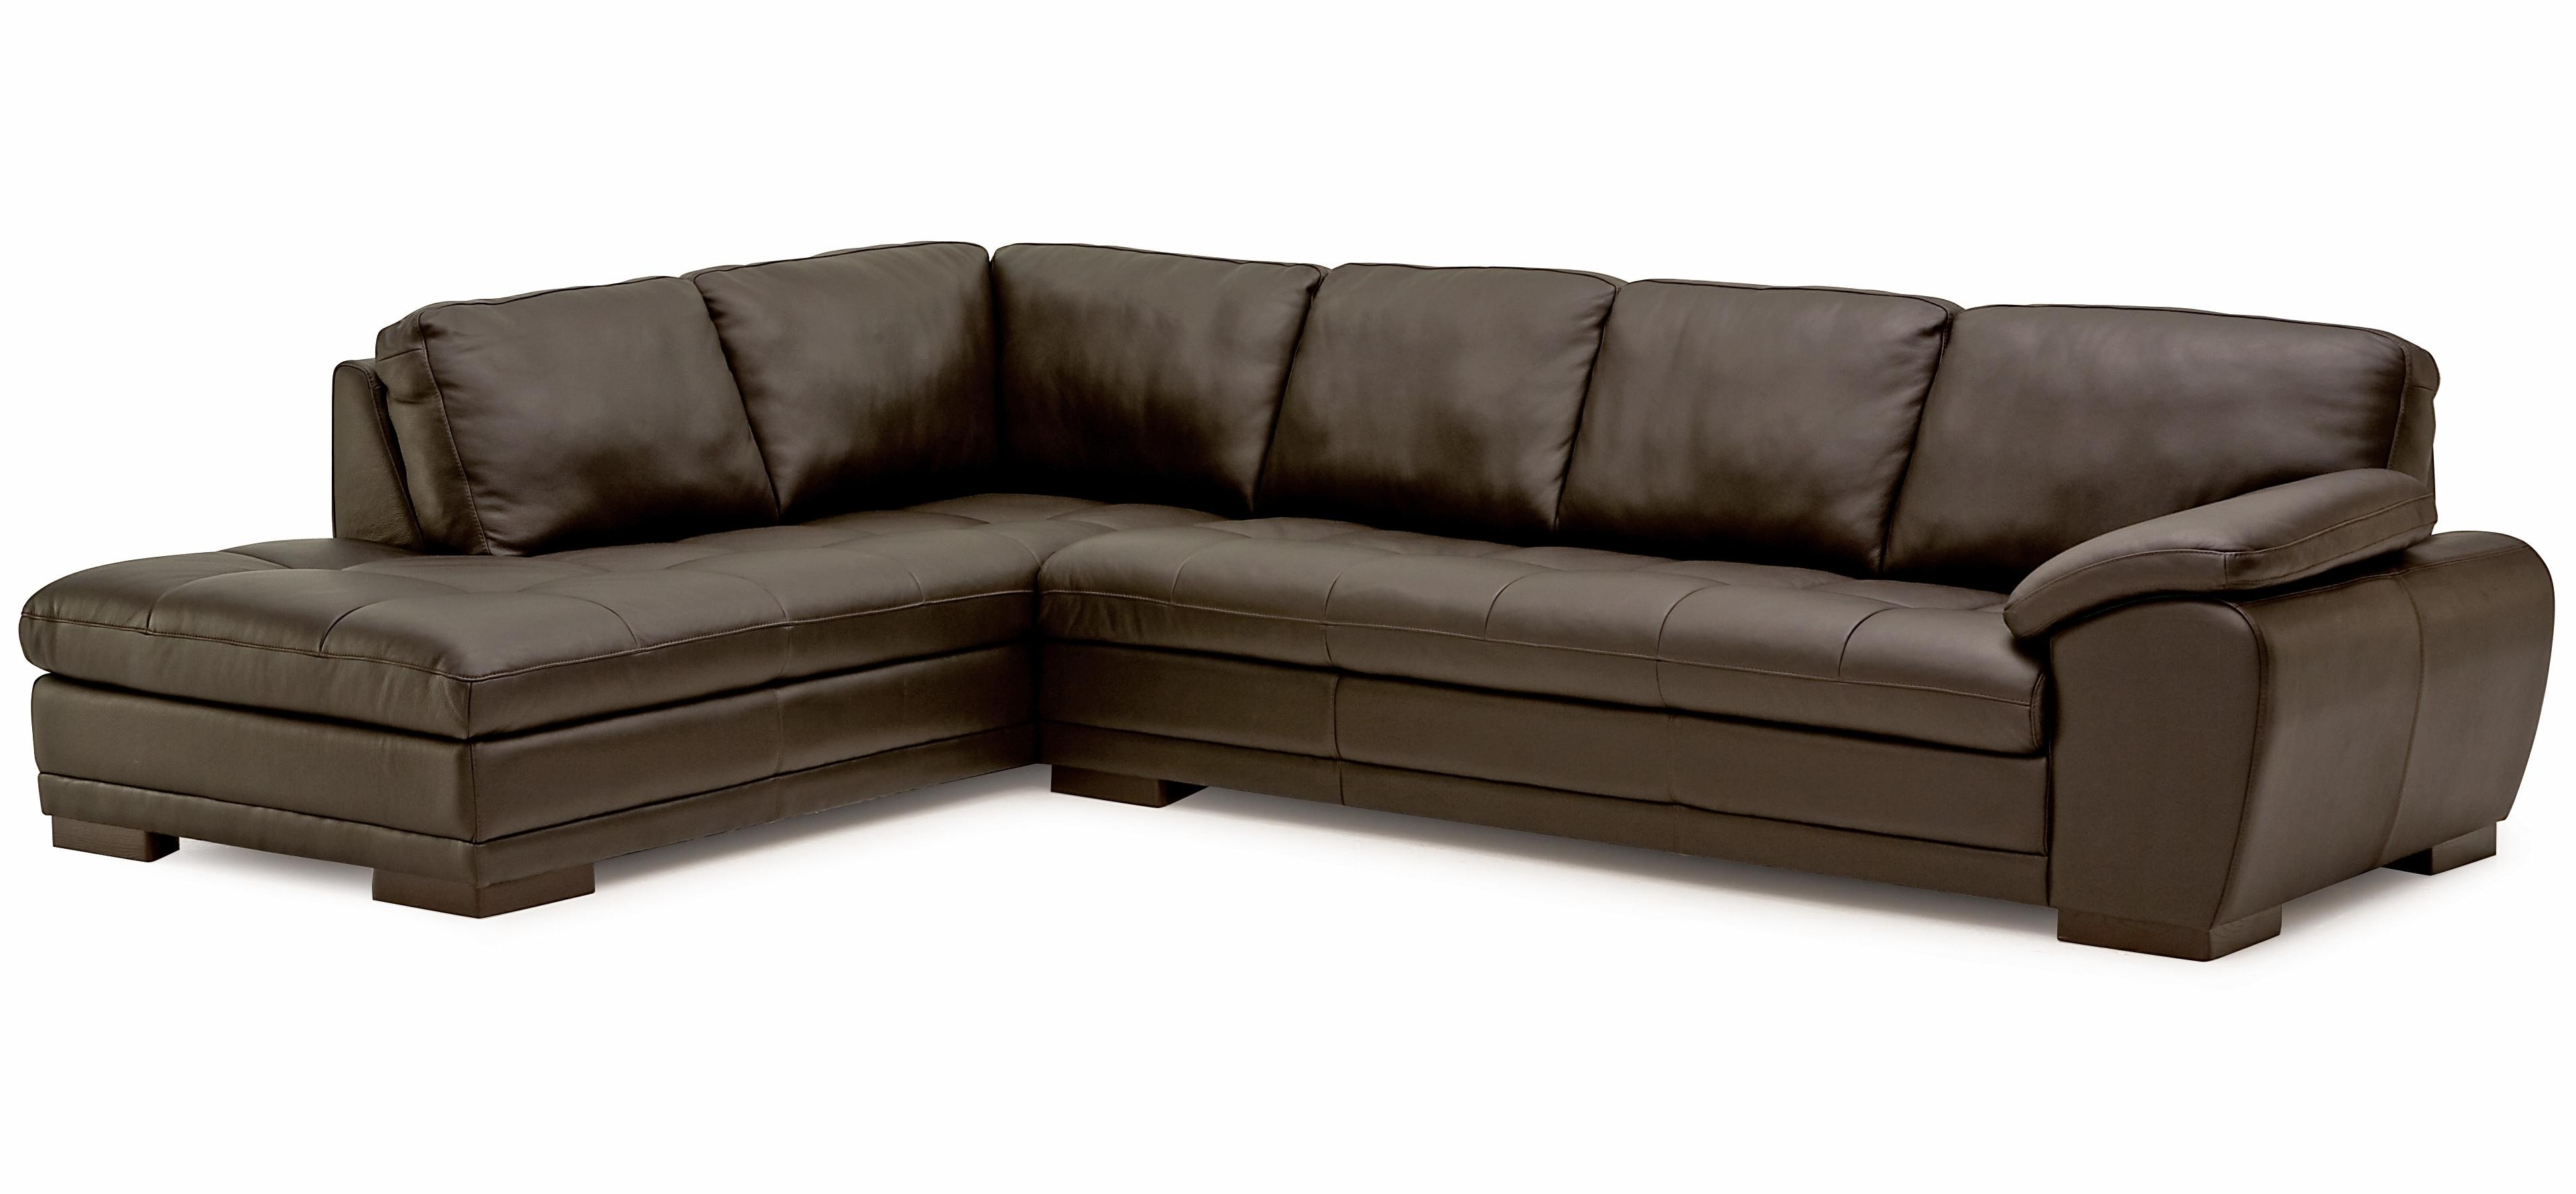 Preferred Miami Sectional Sofas With Regard To Palliser Miami Contemporary 2 Piece Sectional Sofa With Right (View 10 of 15)